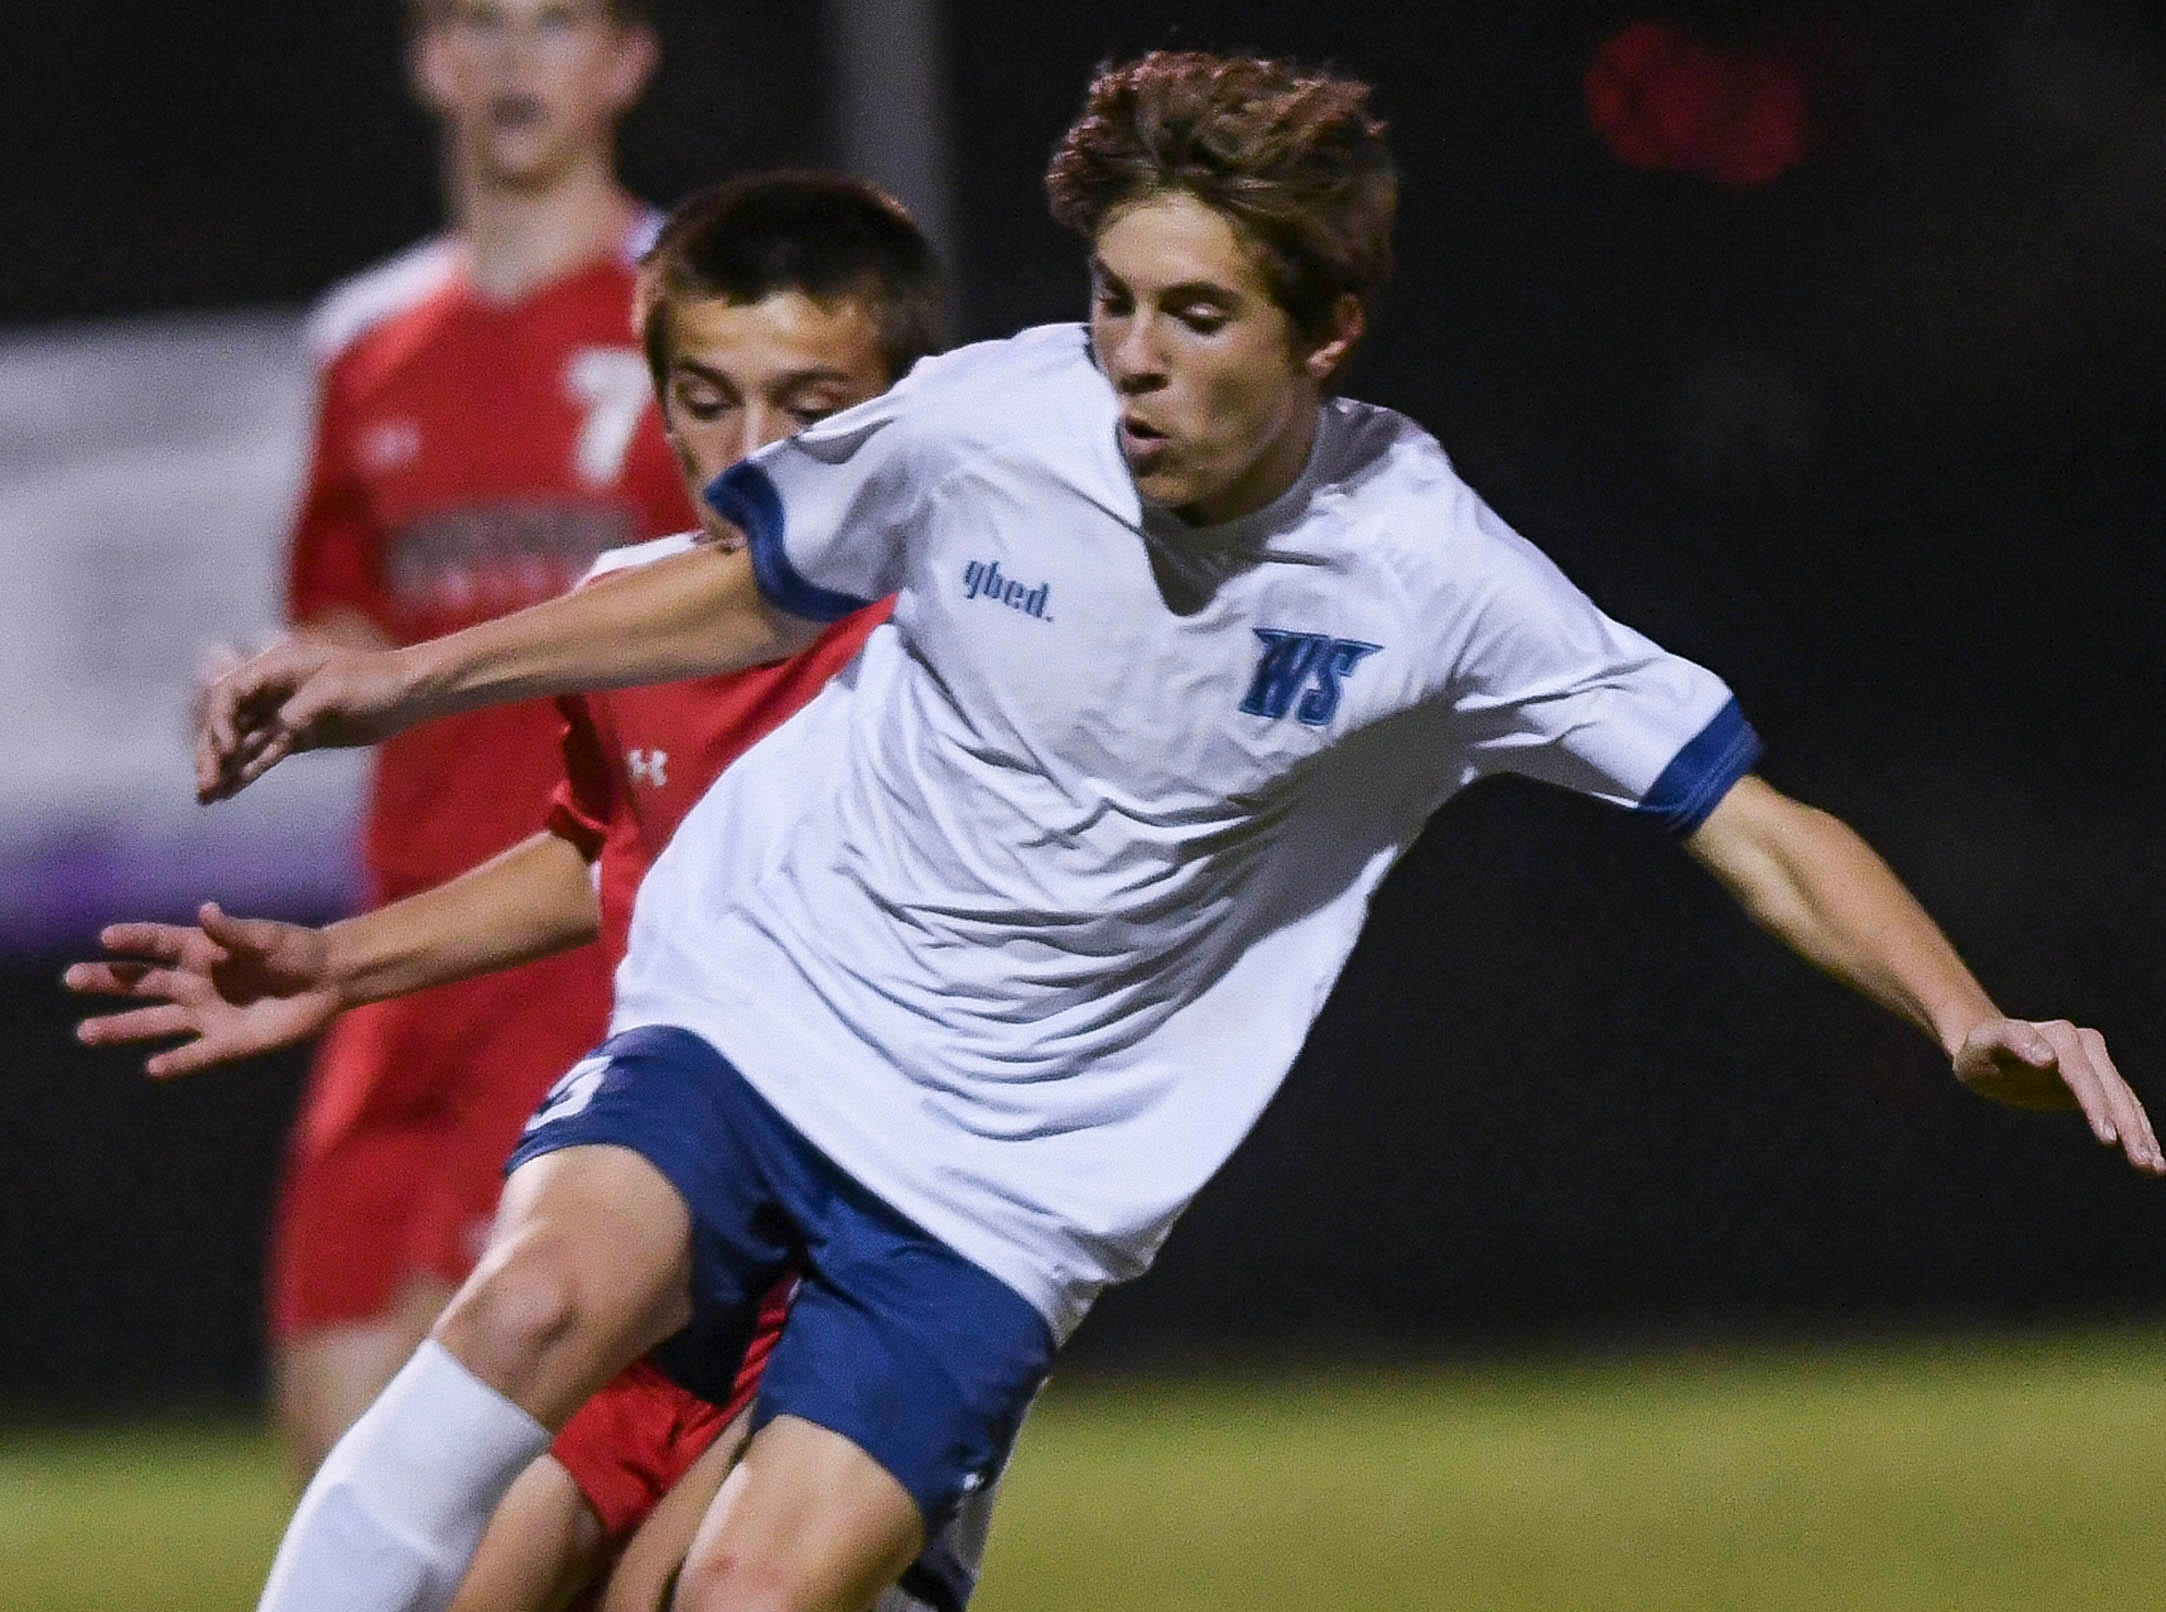 Gavin Robidoux of West Shore passes to a teammate during Thursday's Cape Coast Conference championship game.